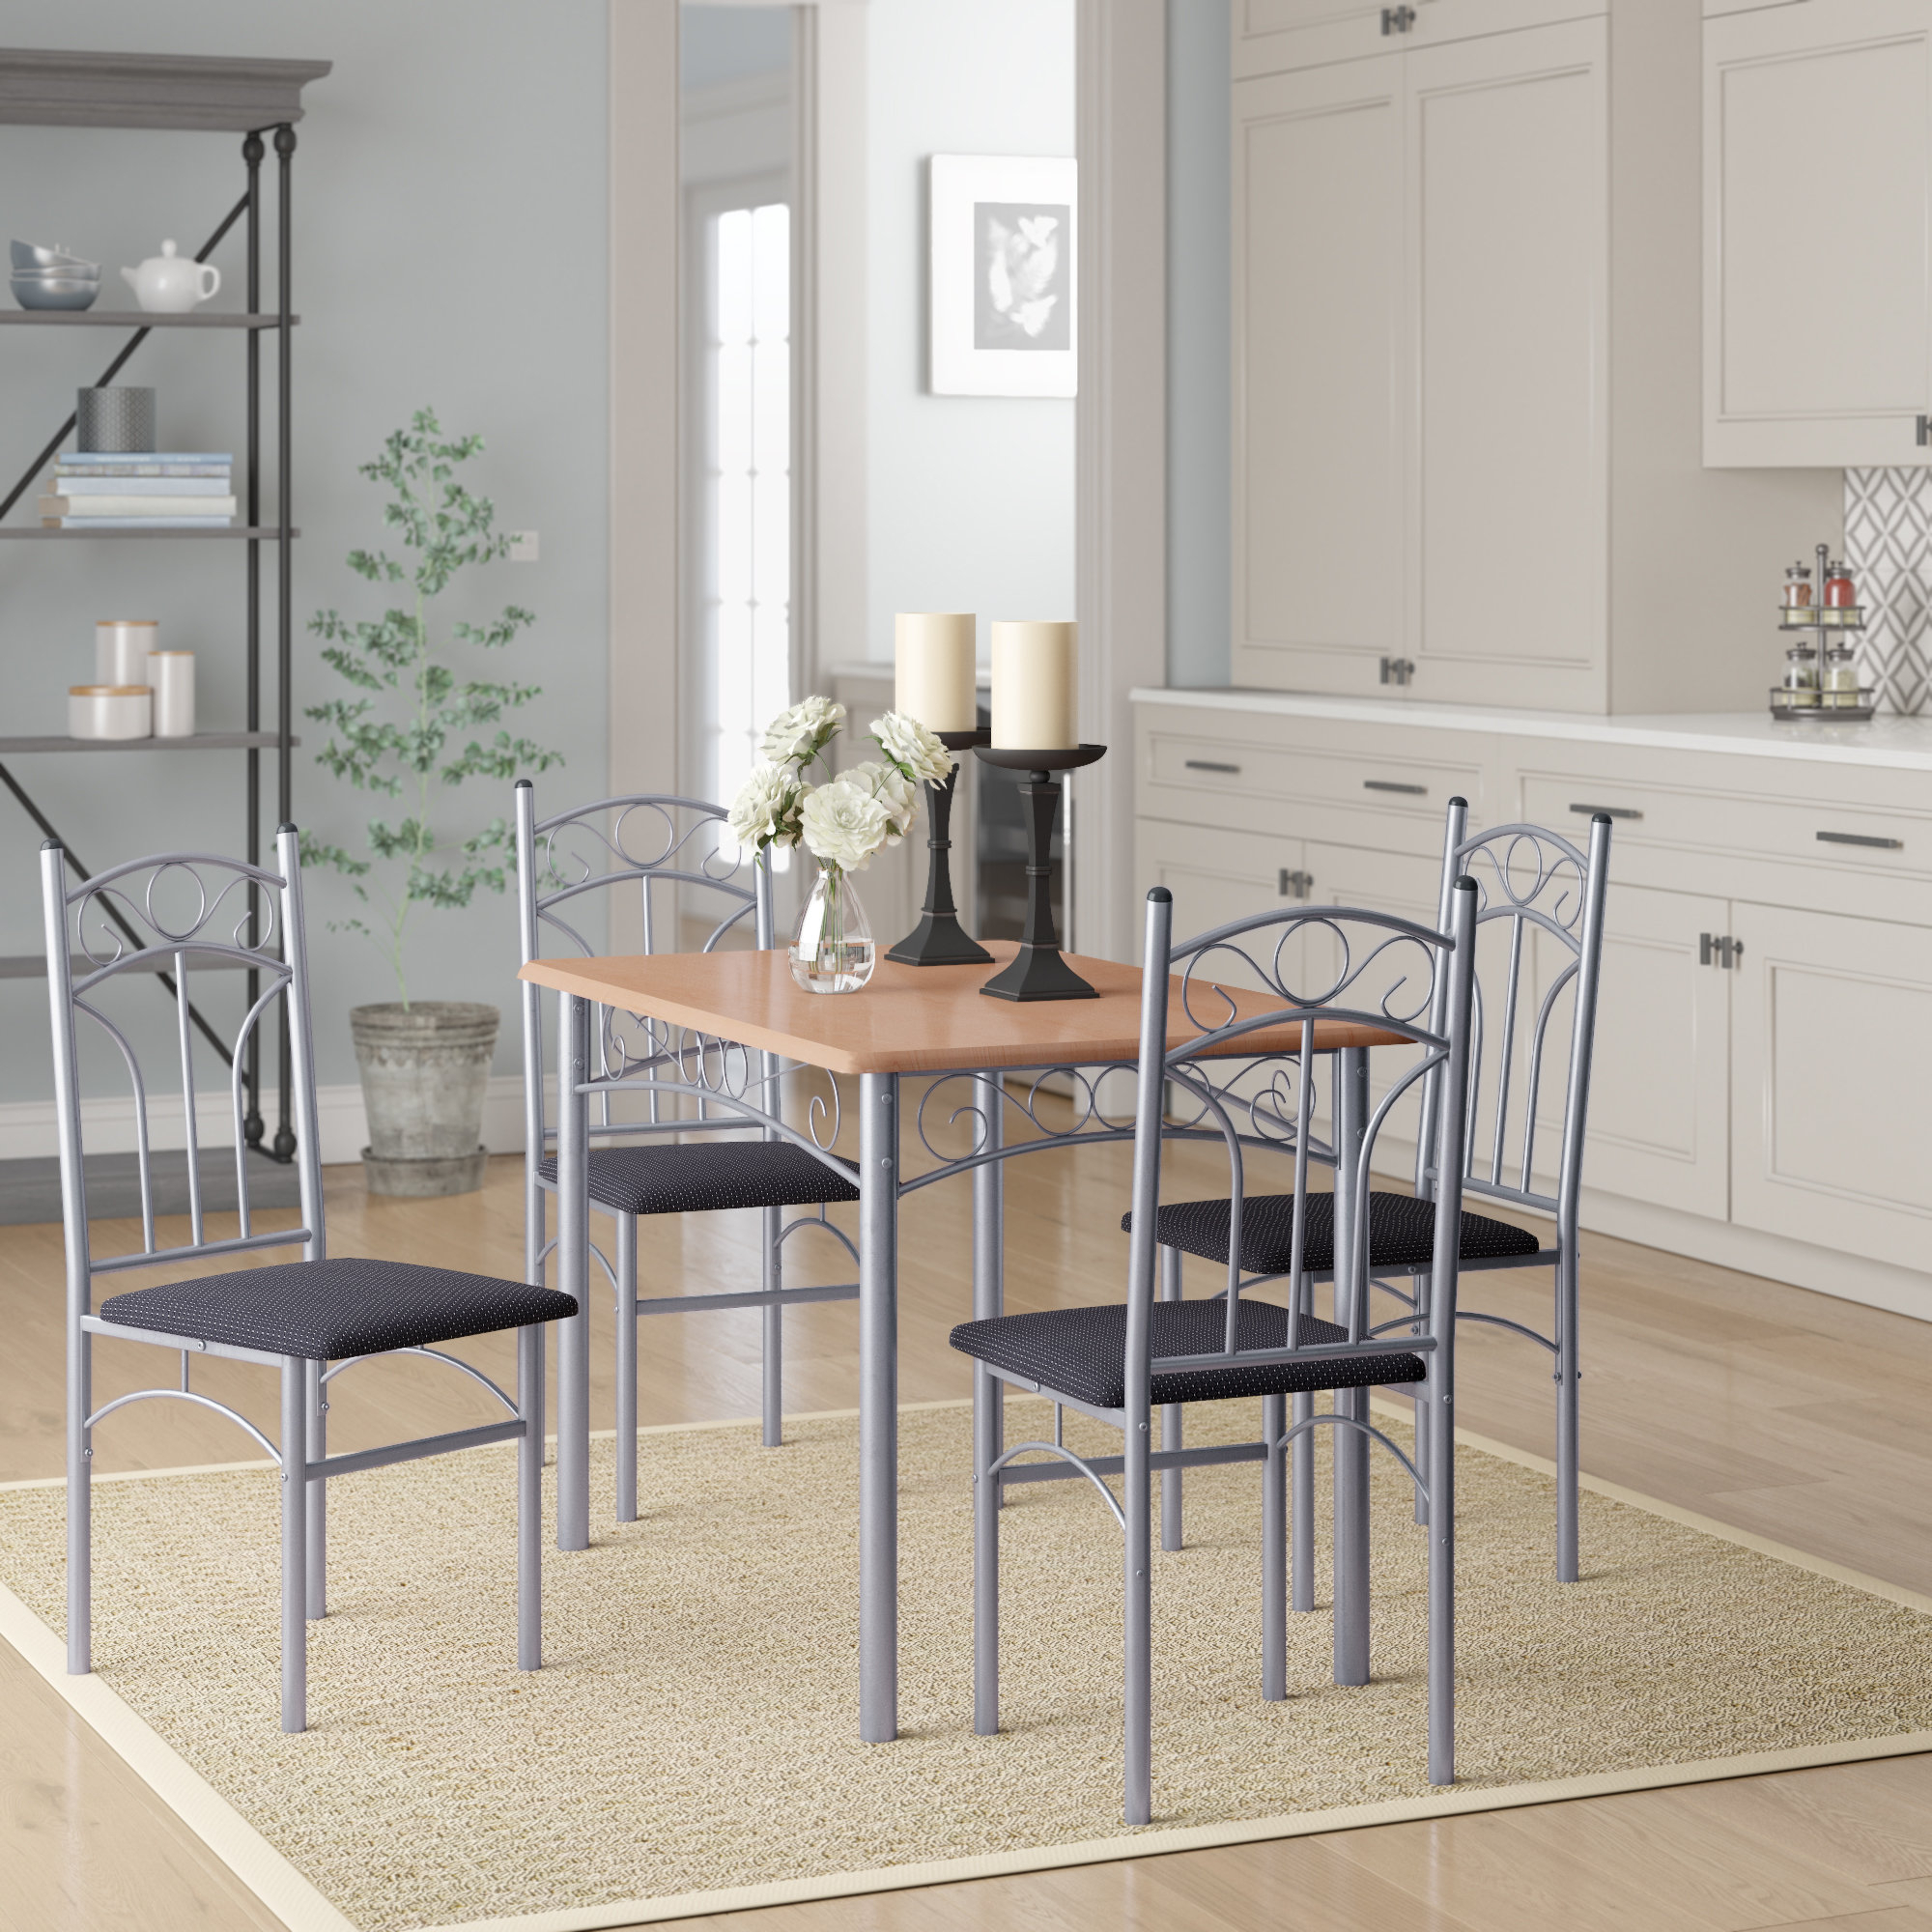 Wayfair Pertaining To Most Current Conover 5 Piece Dining Sets (View 22 of 25)